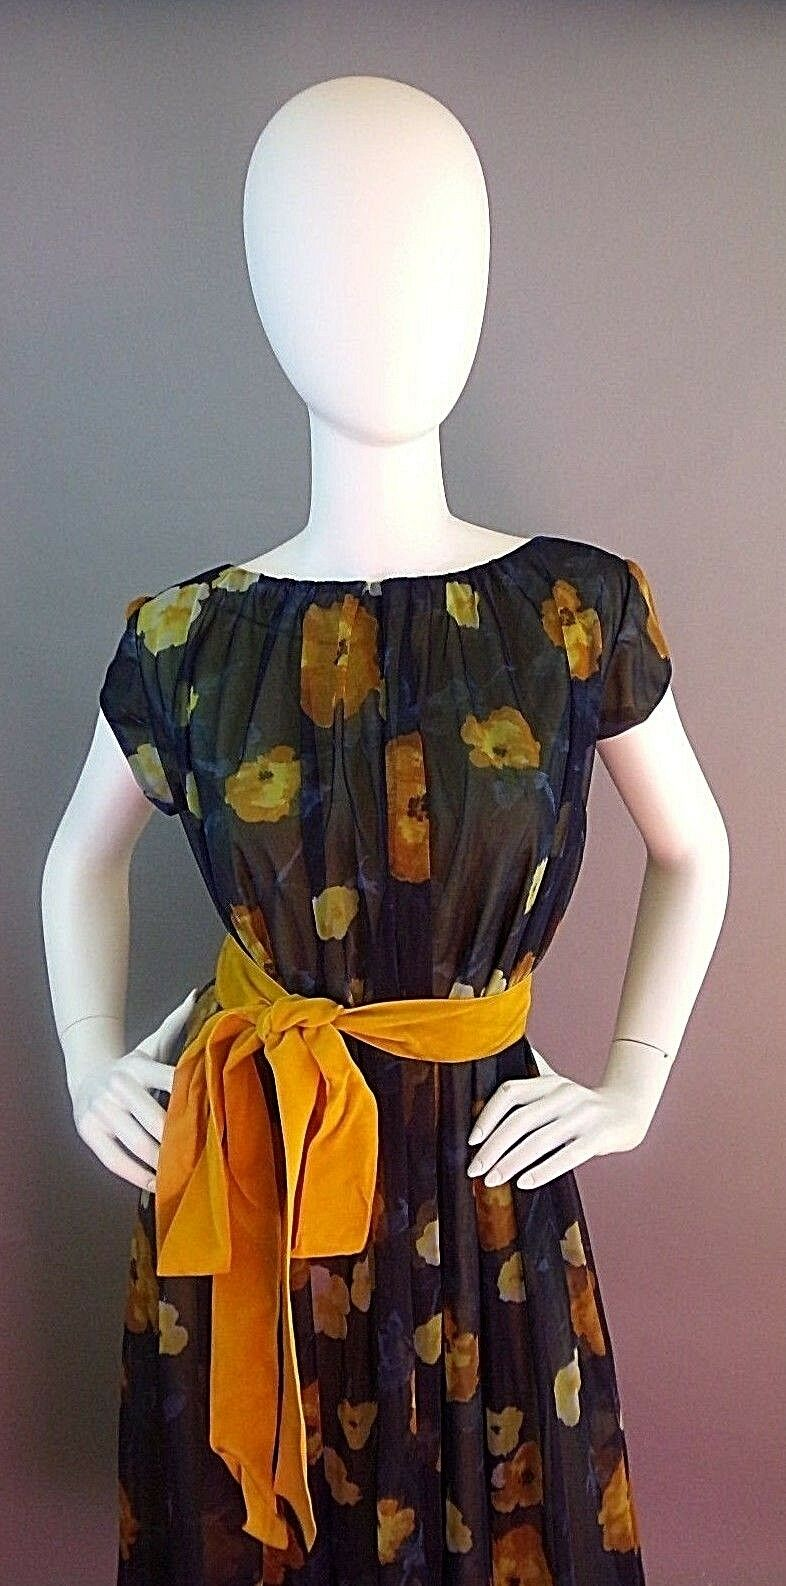 VINTAGE LUCIE ANN BEVERLY HILLS 1950s NIGHTGOWN - image 4